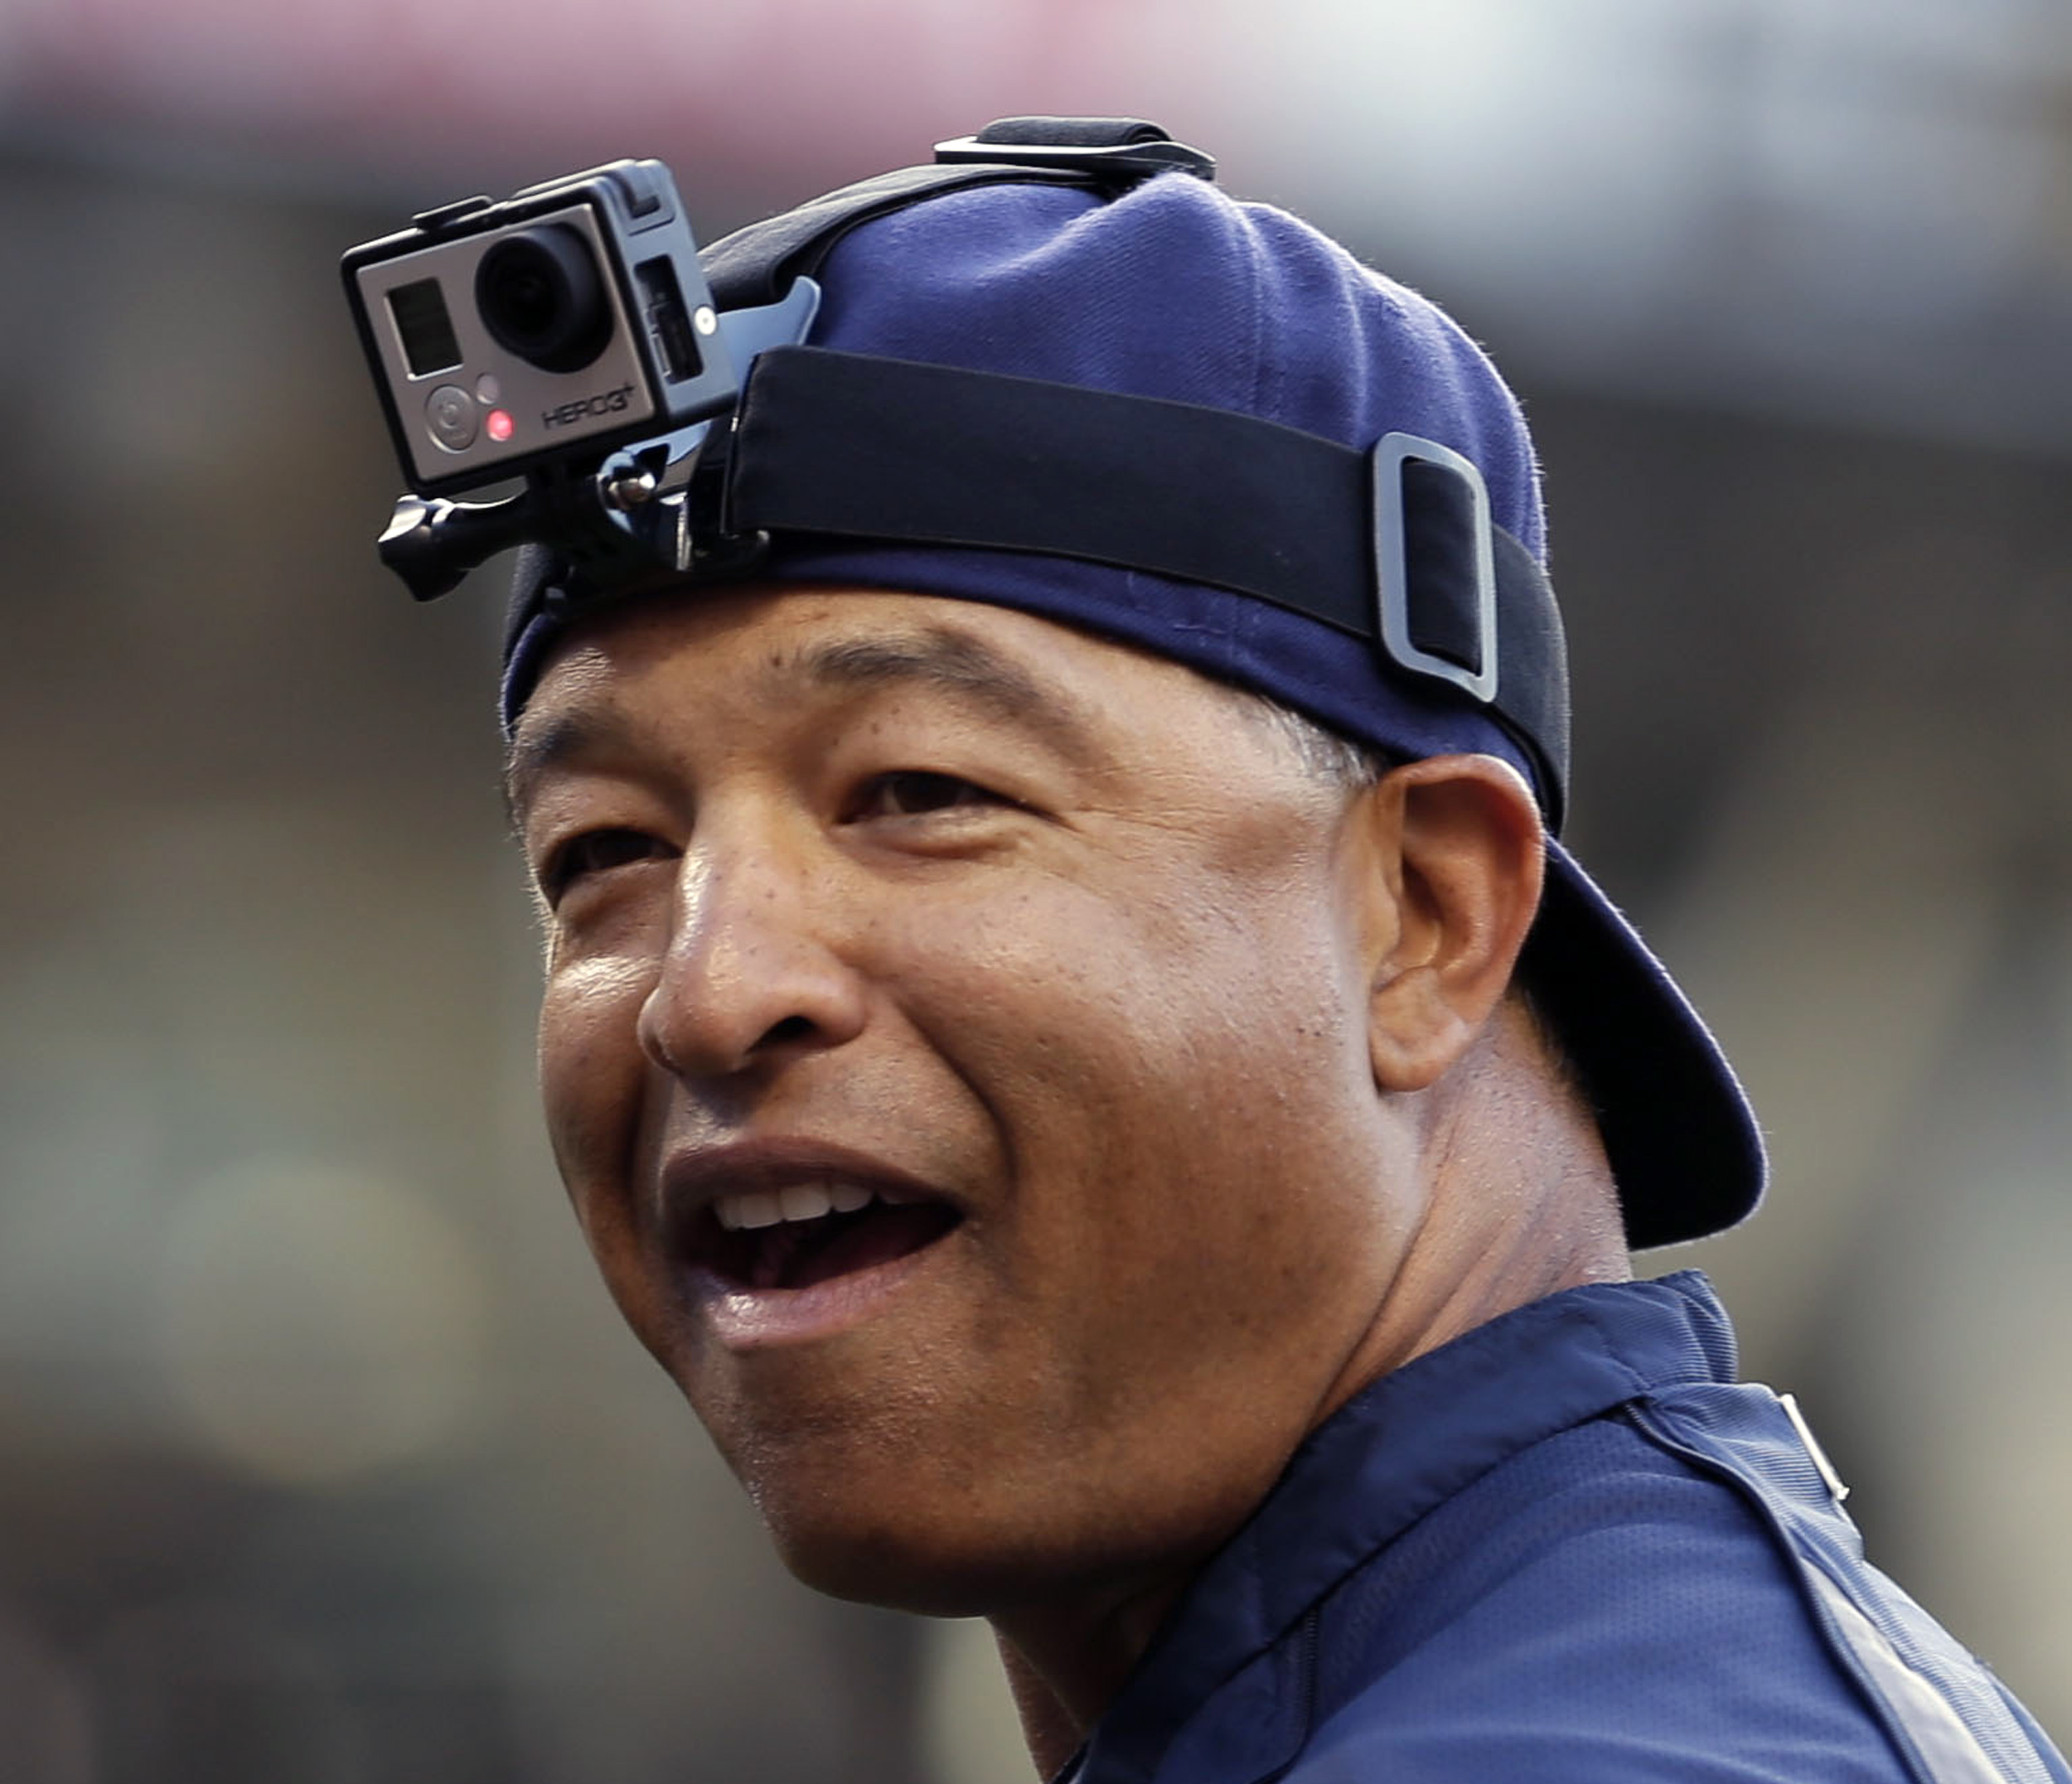 FILE - In this June 6, 2014, file photo, San Diego Padres bench coach Dave Roberts wears a GoPro camera on his head before receiving a ceremonial first pitch from GoPro founder and CEO Nick Woodman before the San Diego Padres played the Washington Nationa